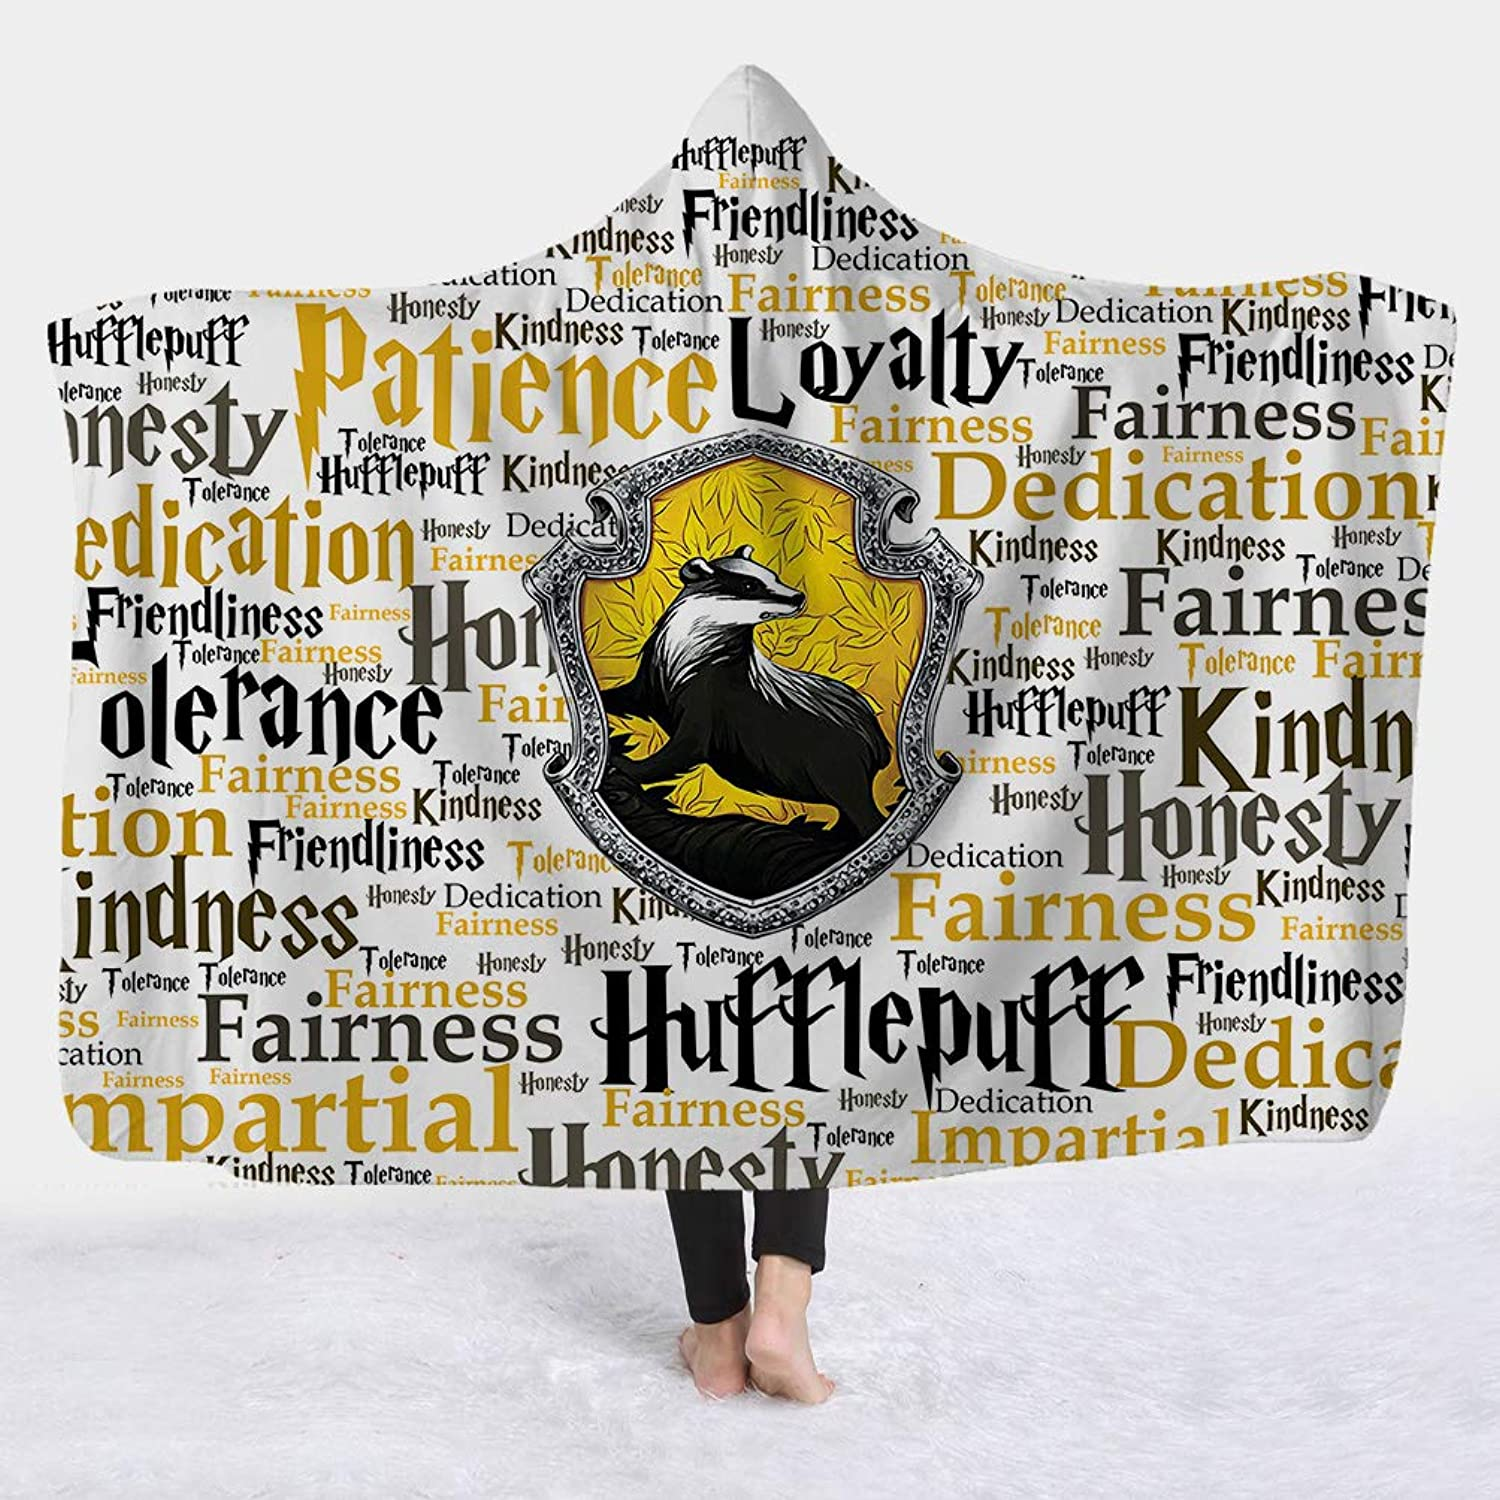 Super Soft Cozy Microfiber Thickened Fleece Throw Wearable Travel Hooded Blanket in Cap Warm for Couch Sofa Bedding